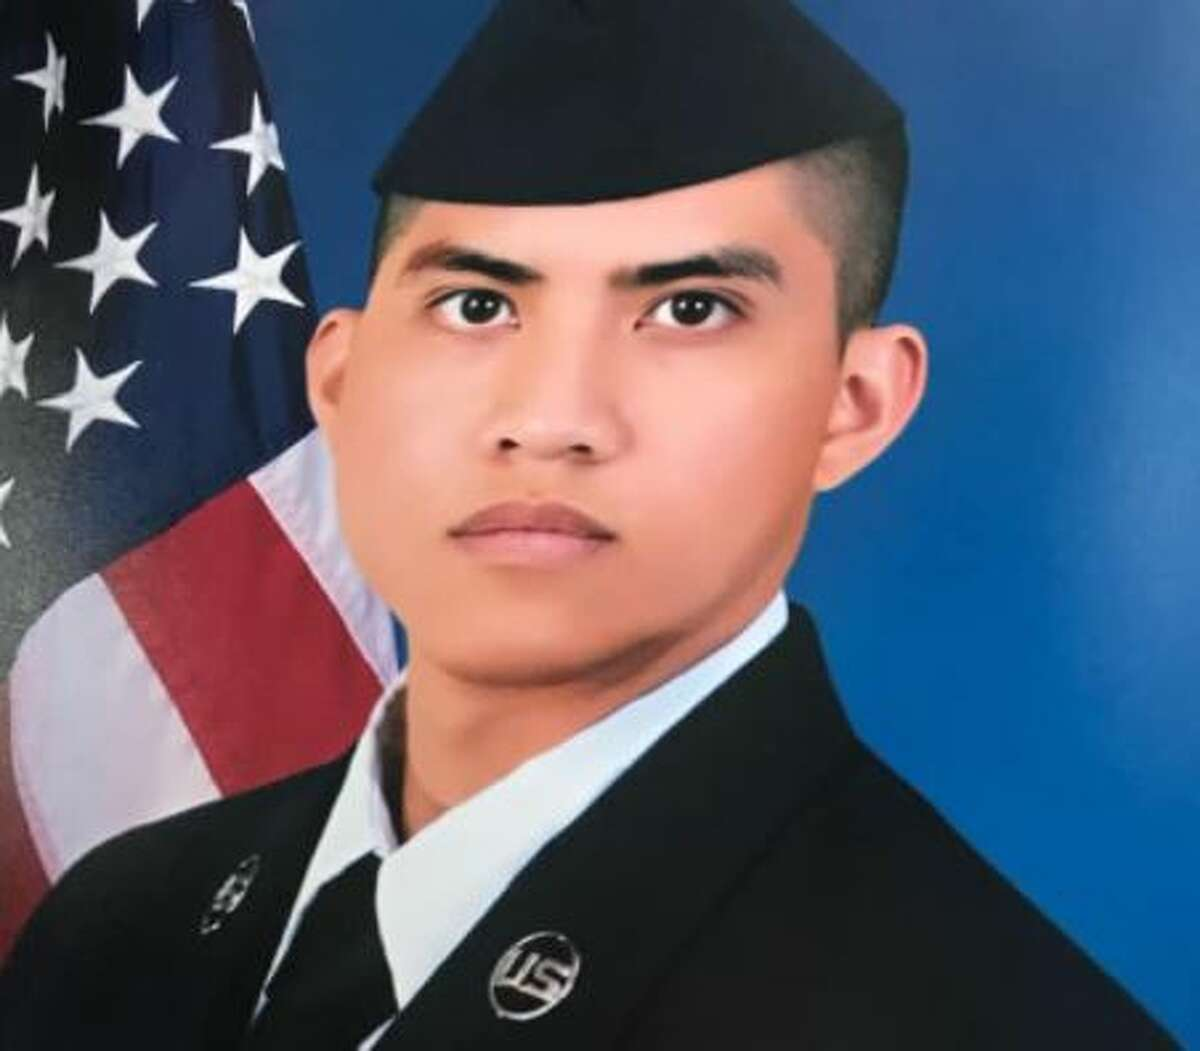 Authorities are searching for a U.S. Air Force member Elijah Posada, who went missing off Surfside Beach Sunday.